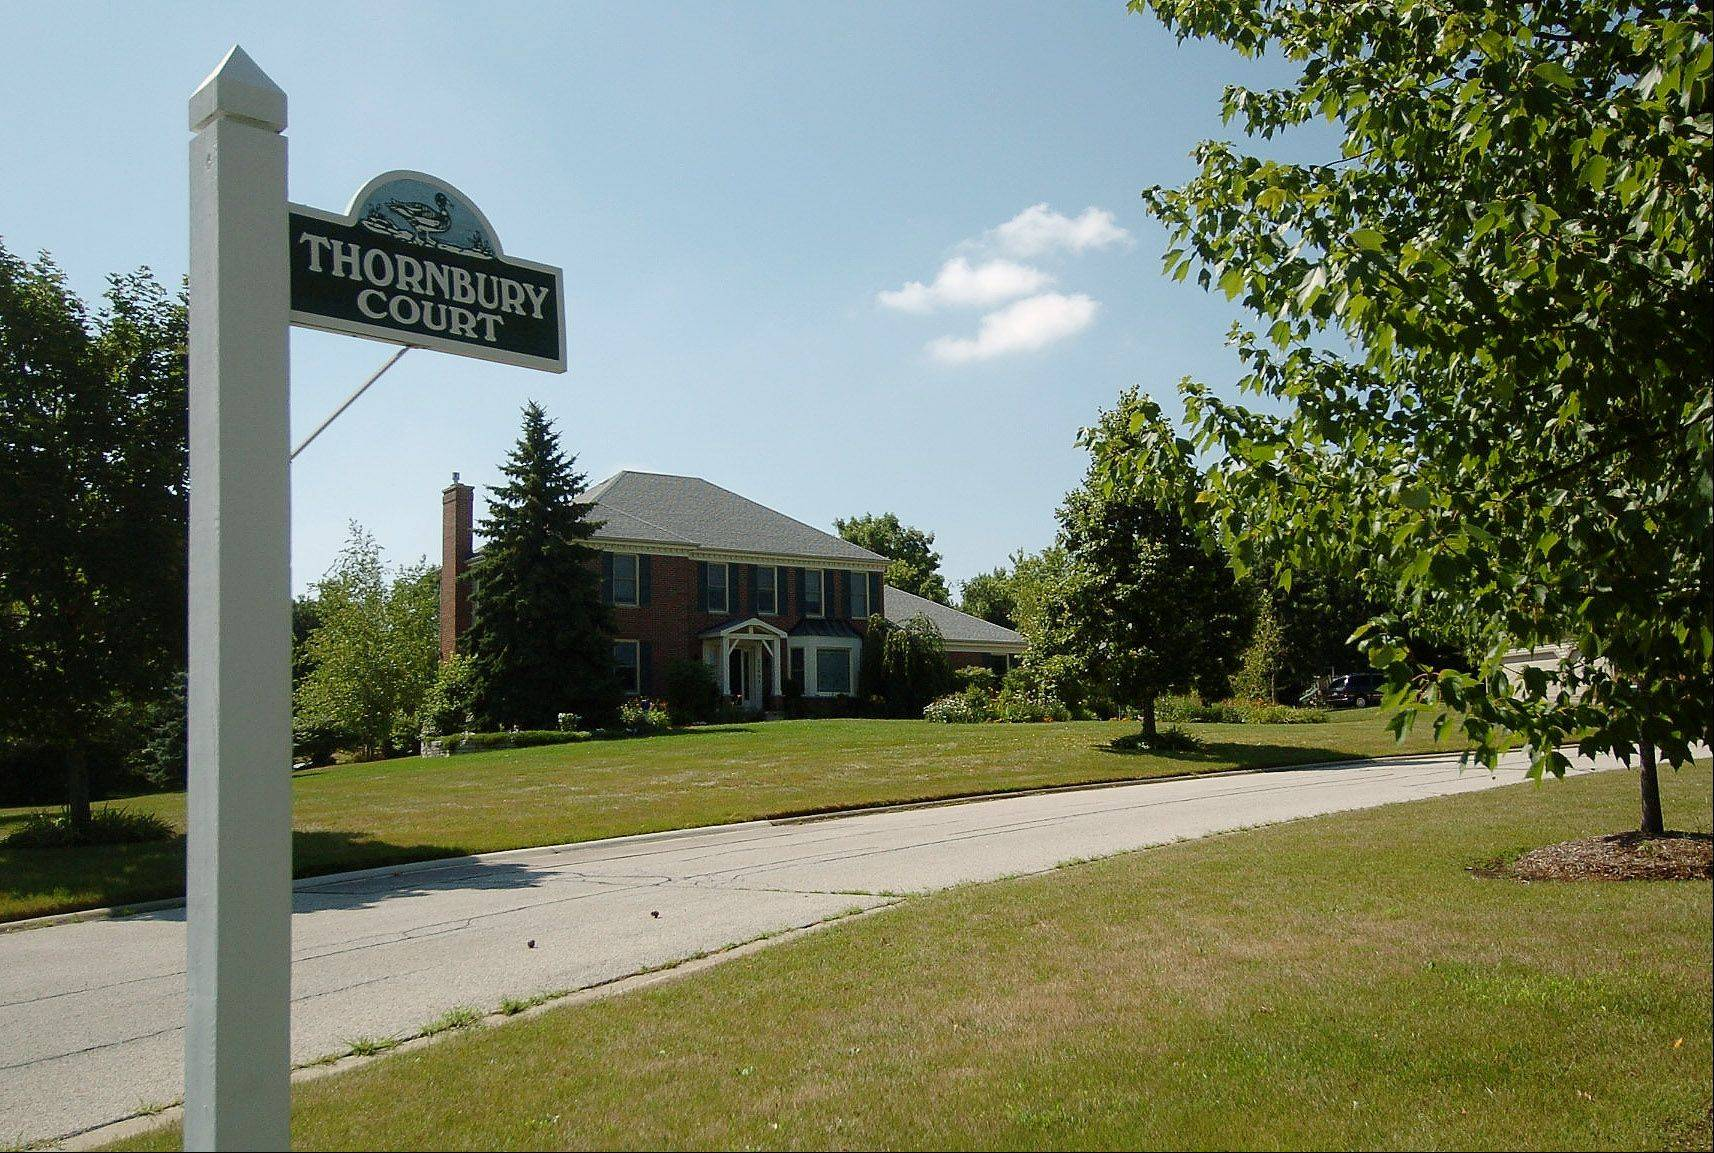 Homes along Thornbury Court in Deer Park are in the Dover Pond neighborhood, where residents enjoy open space and a more rural atmosphere.